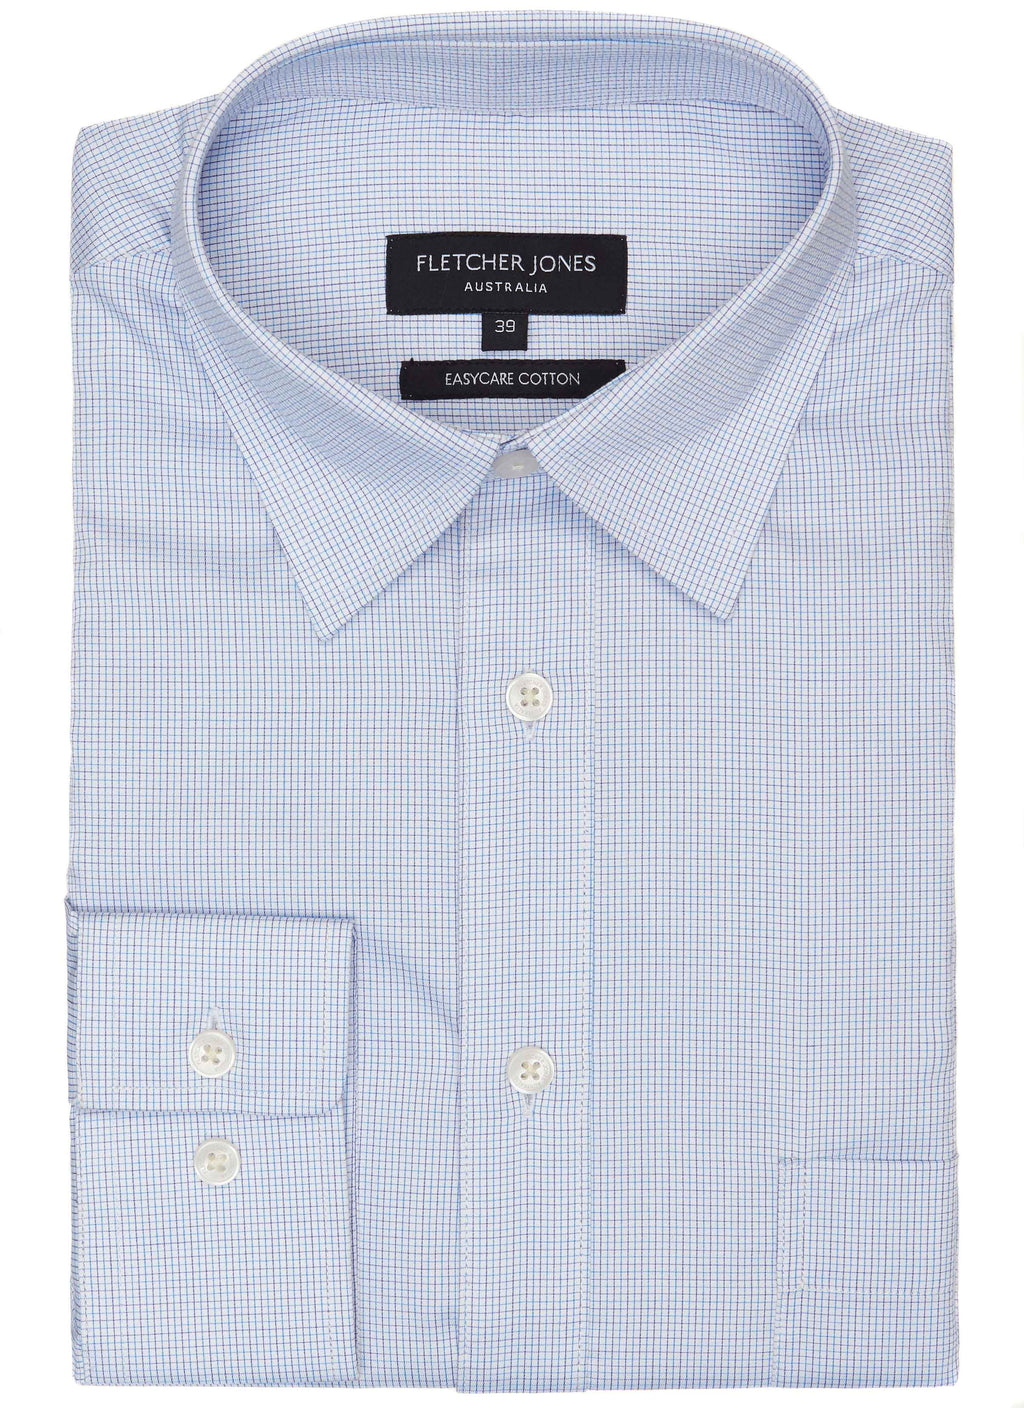 REEDY CLASSIC FIT BUSINESS SHIRT